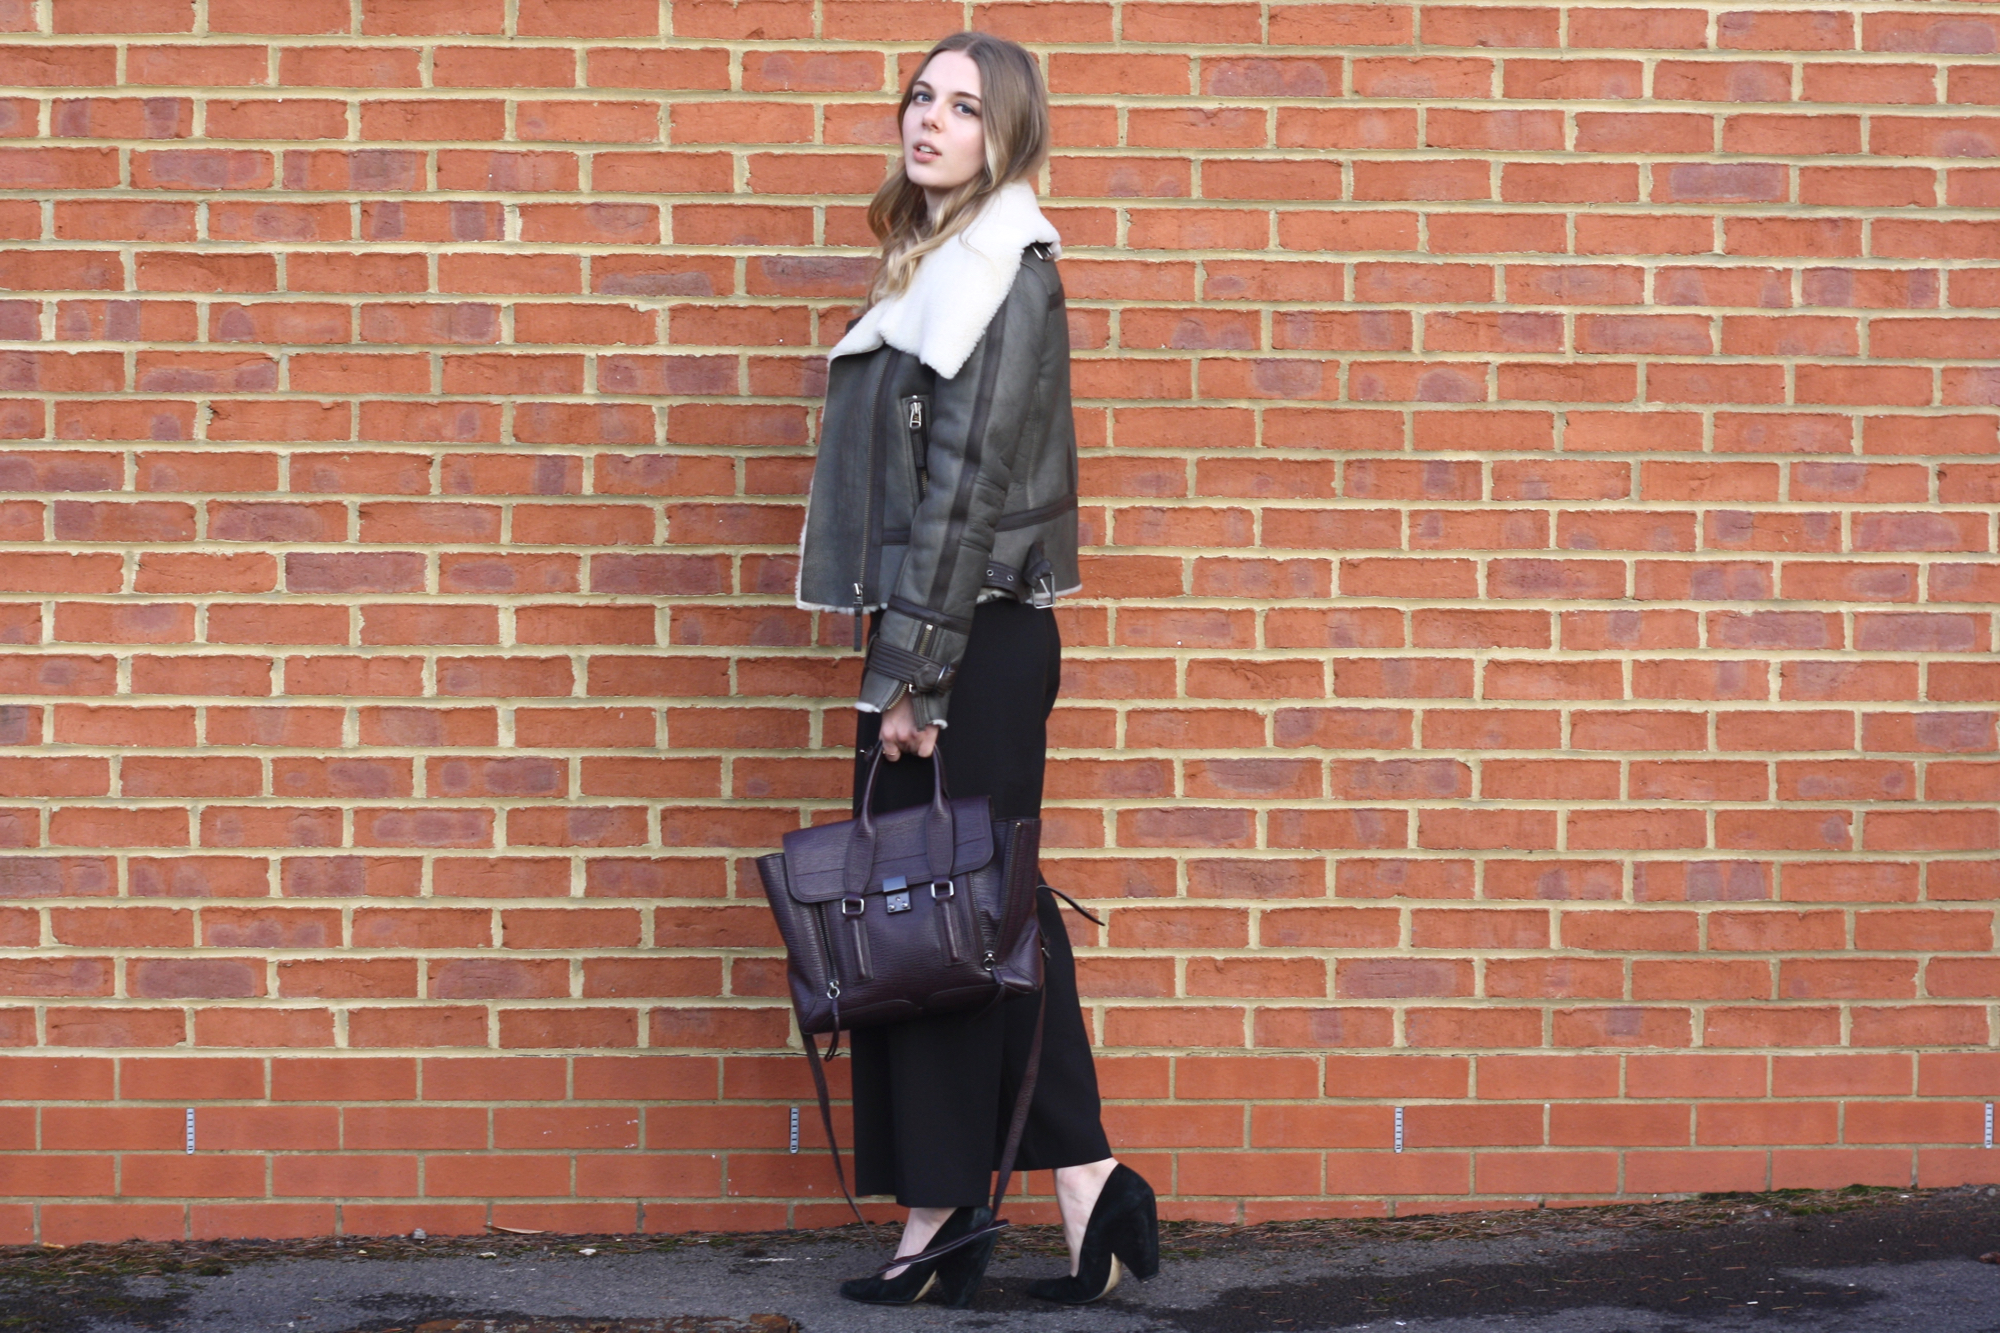 Topshop shearling aviator jacket, 3.1 Phillip Lim Pashli medium and Whistles black suede heels